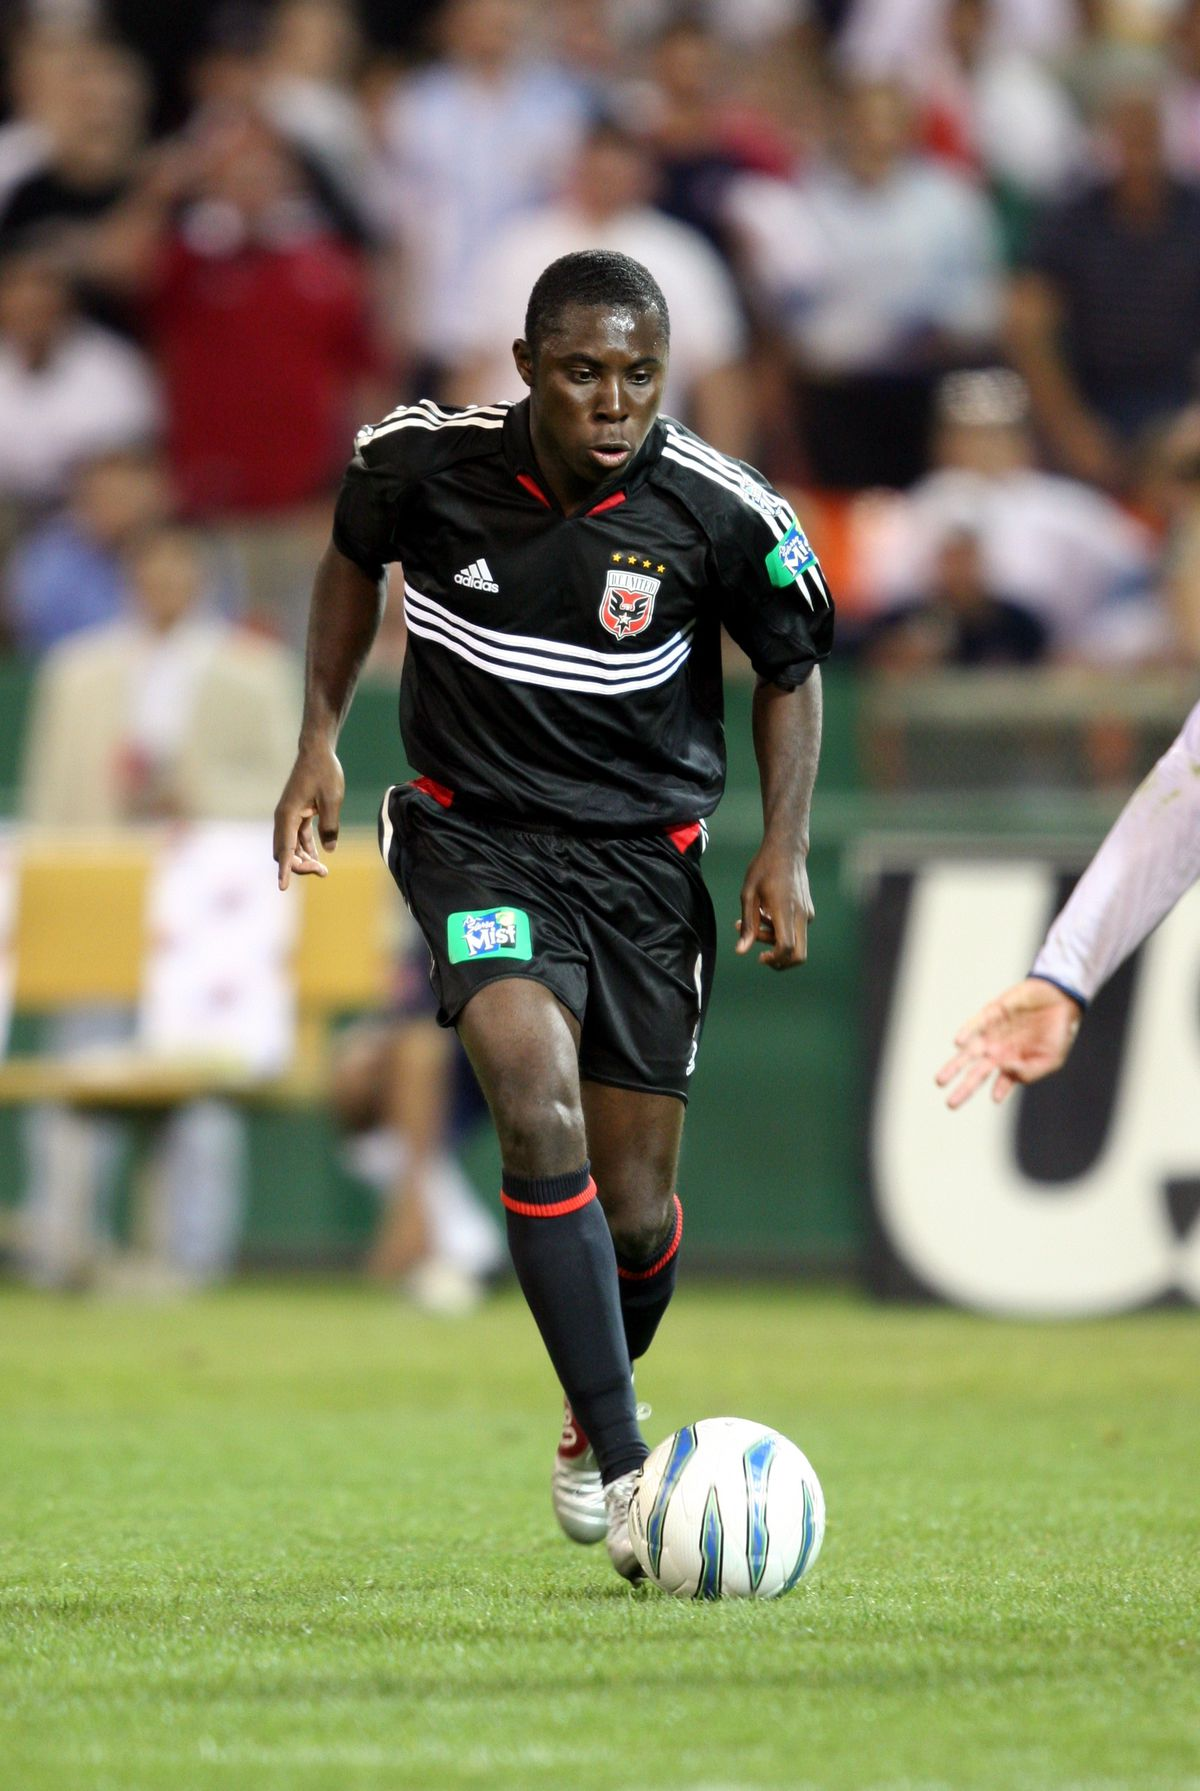 CONCACAF Soccer 2005 - Champion's Cup - DC United vs. Pumas